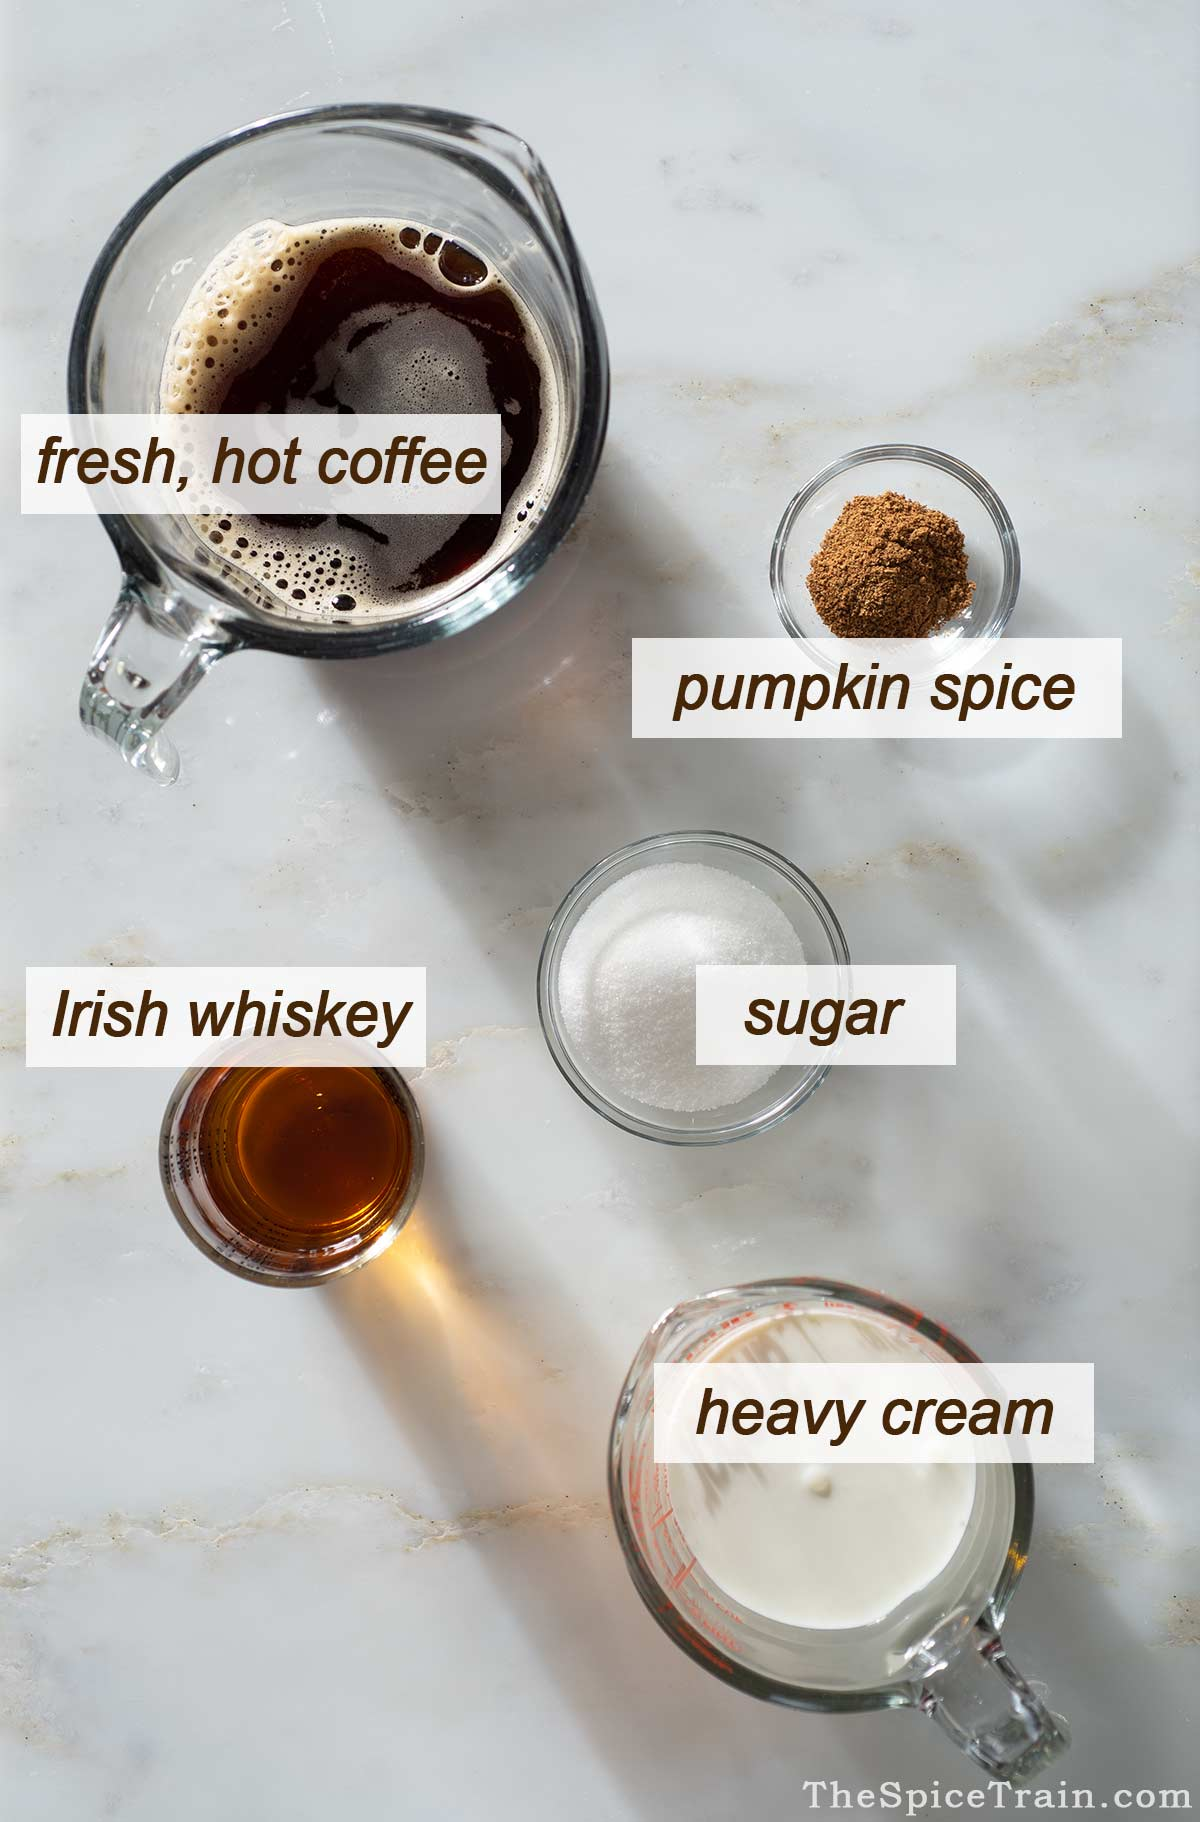 Ingredients for spiced Irish coffee on a kitchen counter.